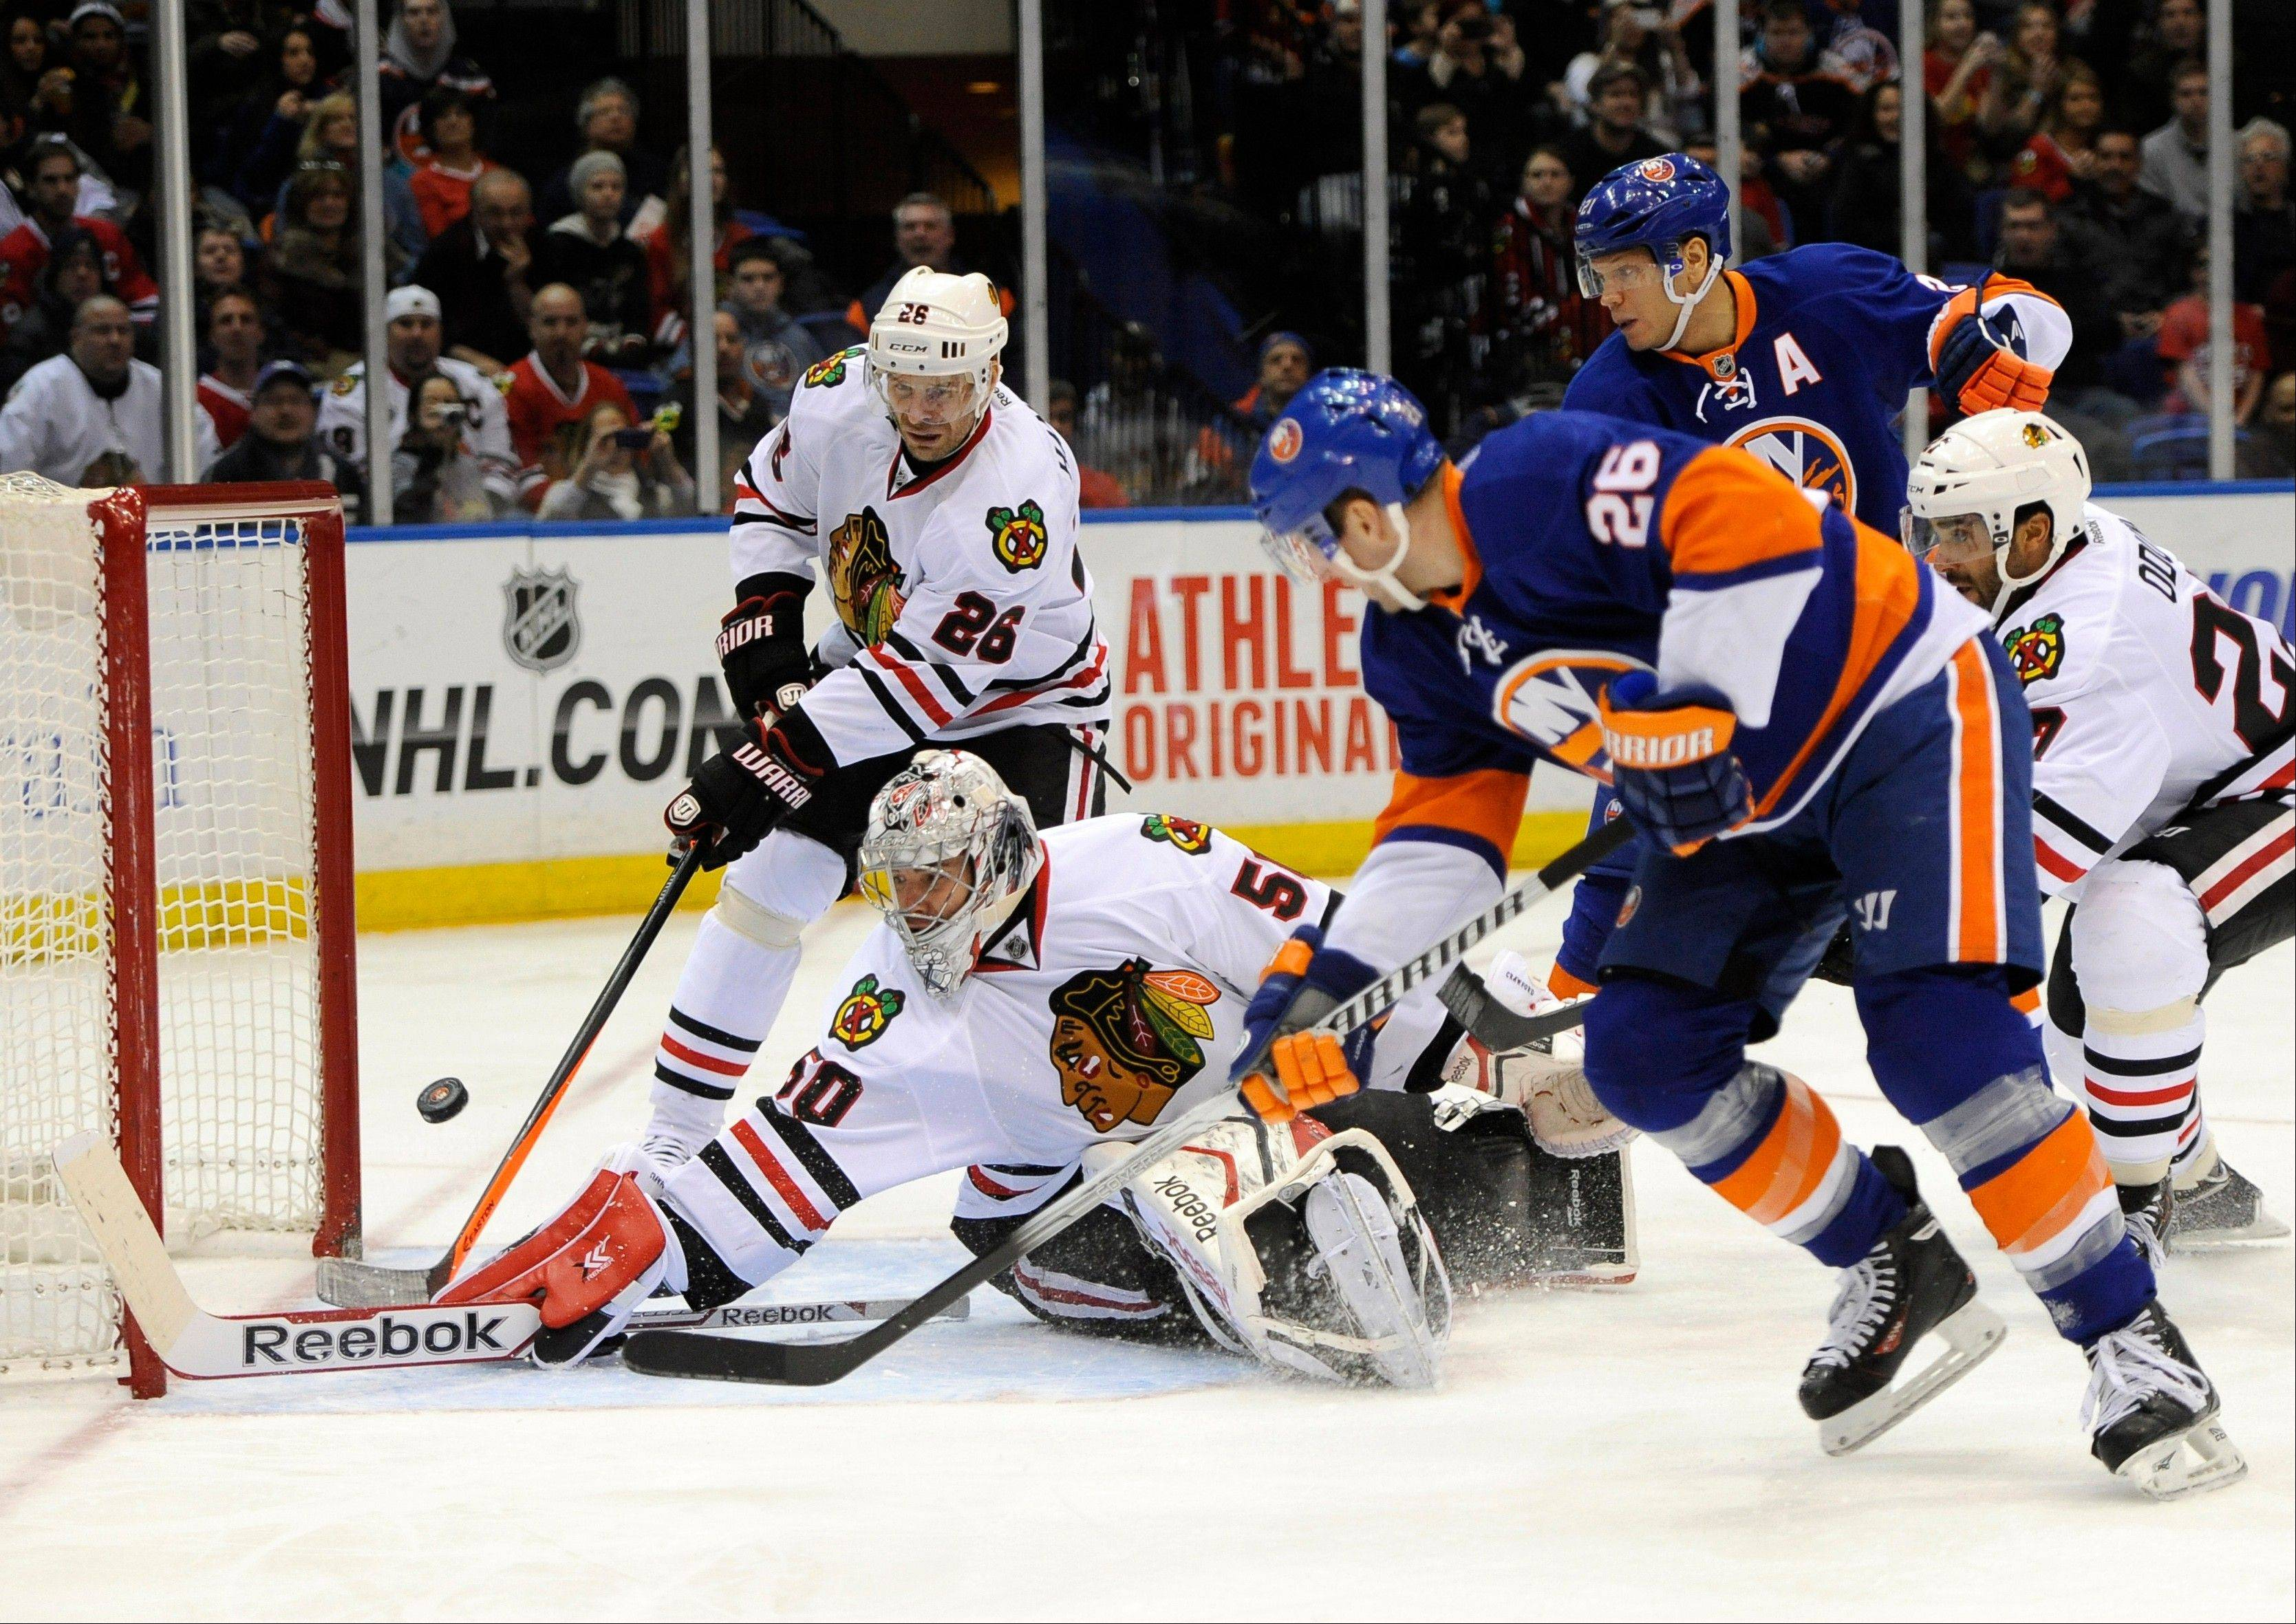 New York Islanders' Thomas Vanek, front right, shoots the puck past Chicago Blackhawks goalie Corey Crawford (50) as Blackhawks' Michal Handzus, back left, tries to defend in the second period of an NHL hockey game on Thursday, Jan. 2, 2014, in Uniondale, N.Y. (AP Photo/Kathy Kmonicek)